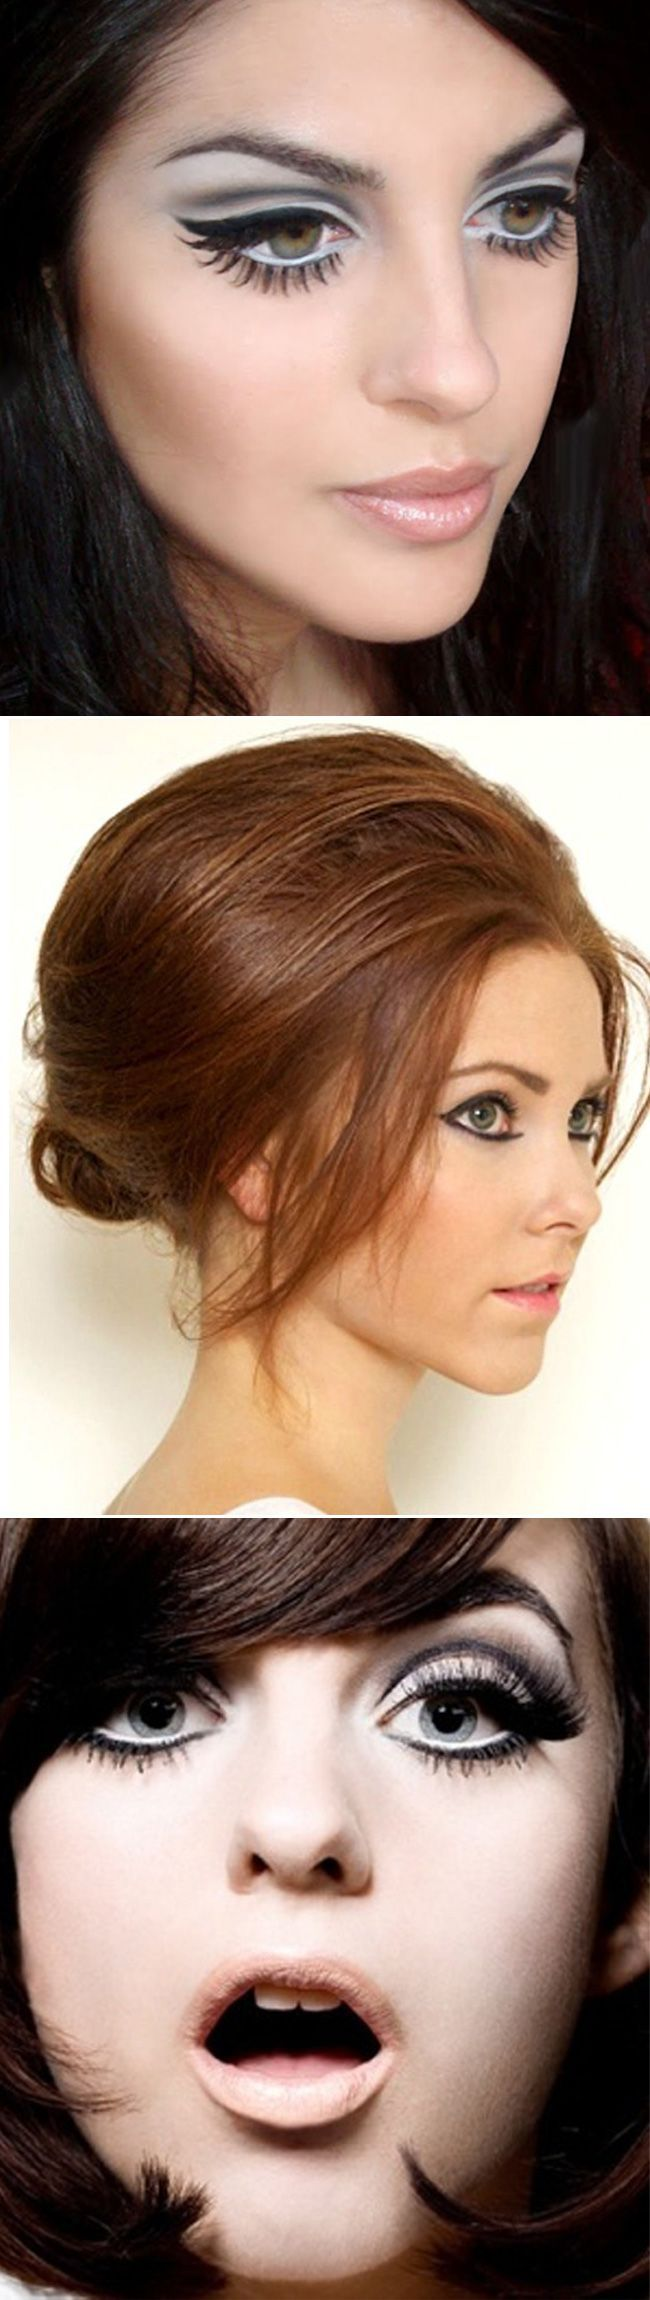 1960s Vintage Make Up - it's all about the eyes. Take a look at Glitzy Secrets' GS Inspiration for more vintage make up looks